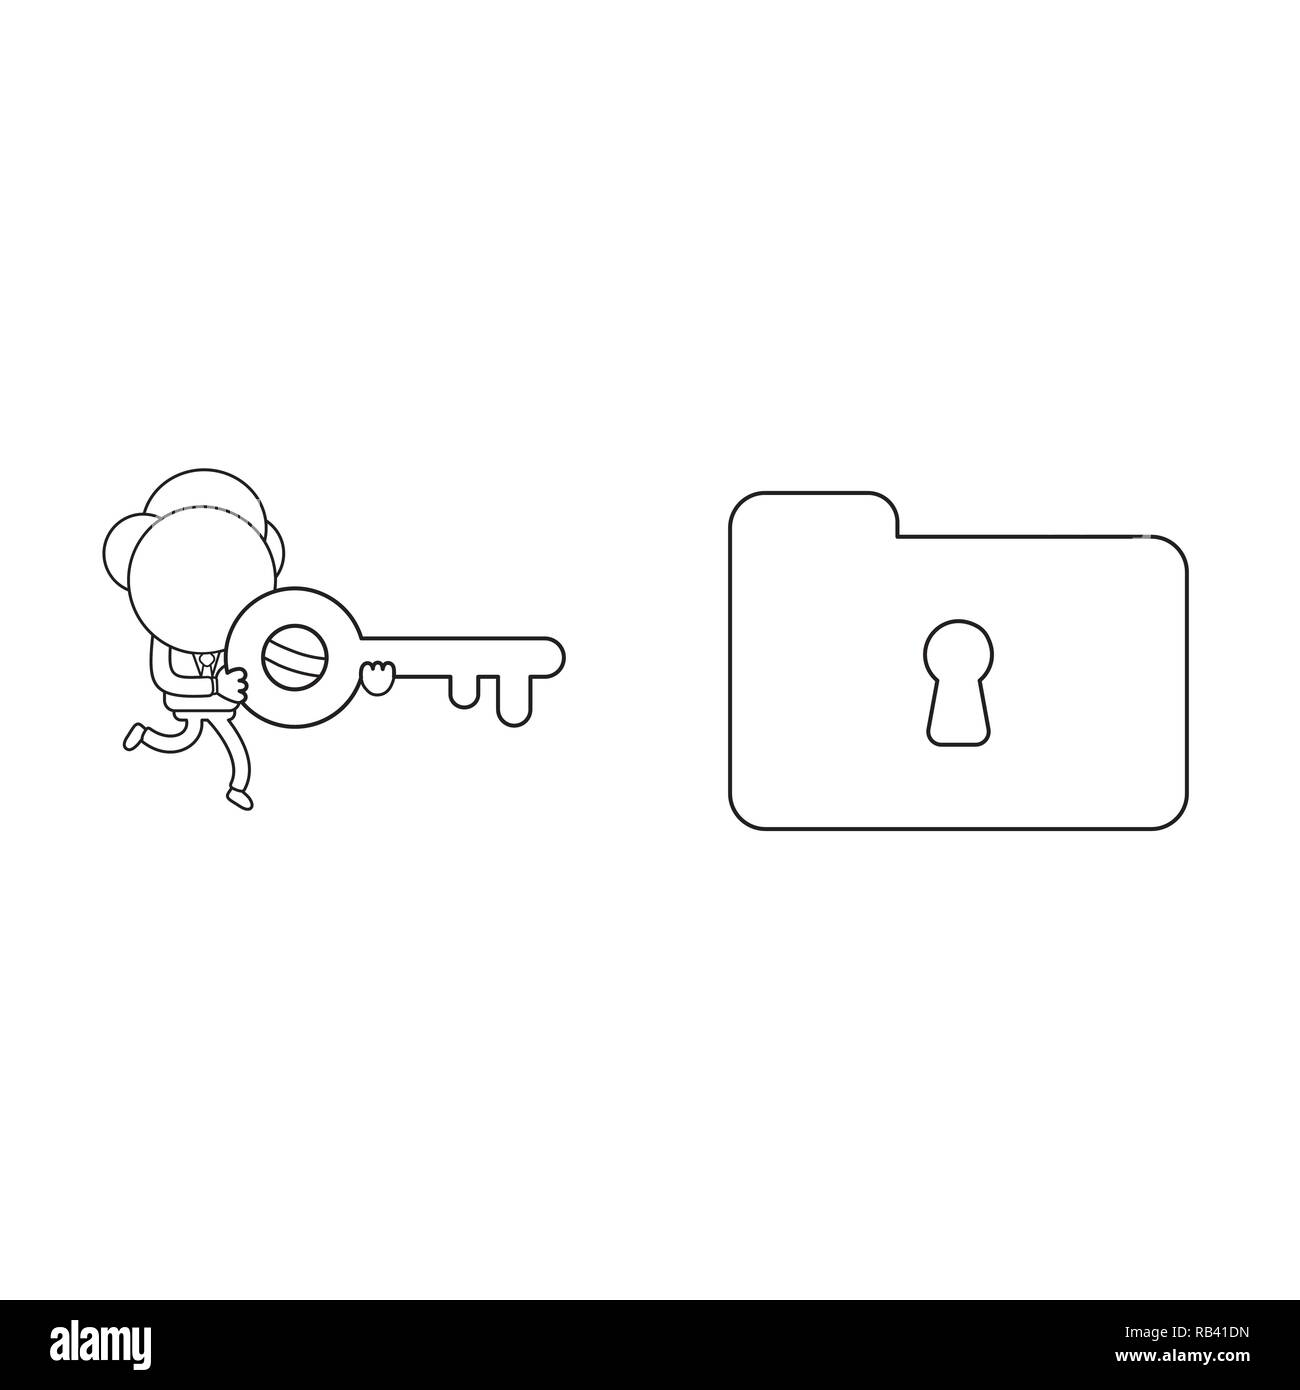 Vector illustration concept of businessman character running and carrying keyhole to lock or unlock file folder. Black outline. - Stock Image